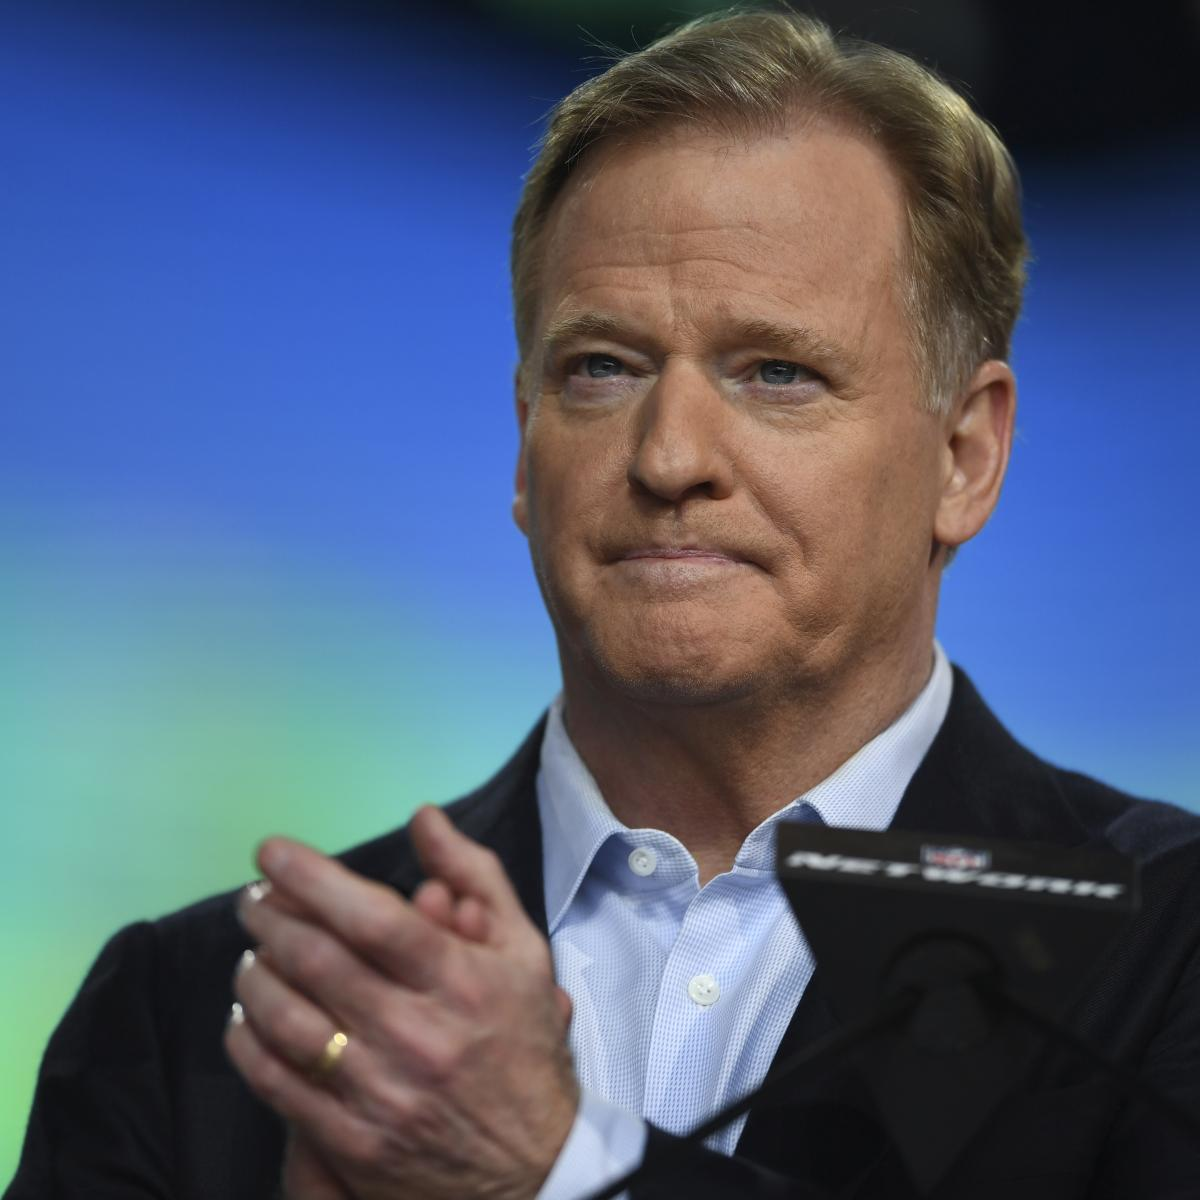 Nfl Calendar 2022.2022 Nfl Draft Schedule Of Dates For Las Vegas Reportedly Set Bleacher Report Latest News Videos And Highlights